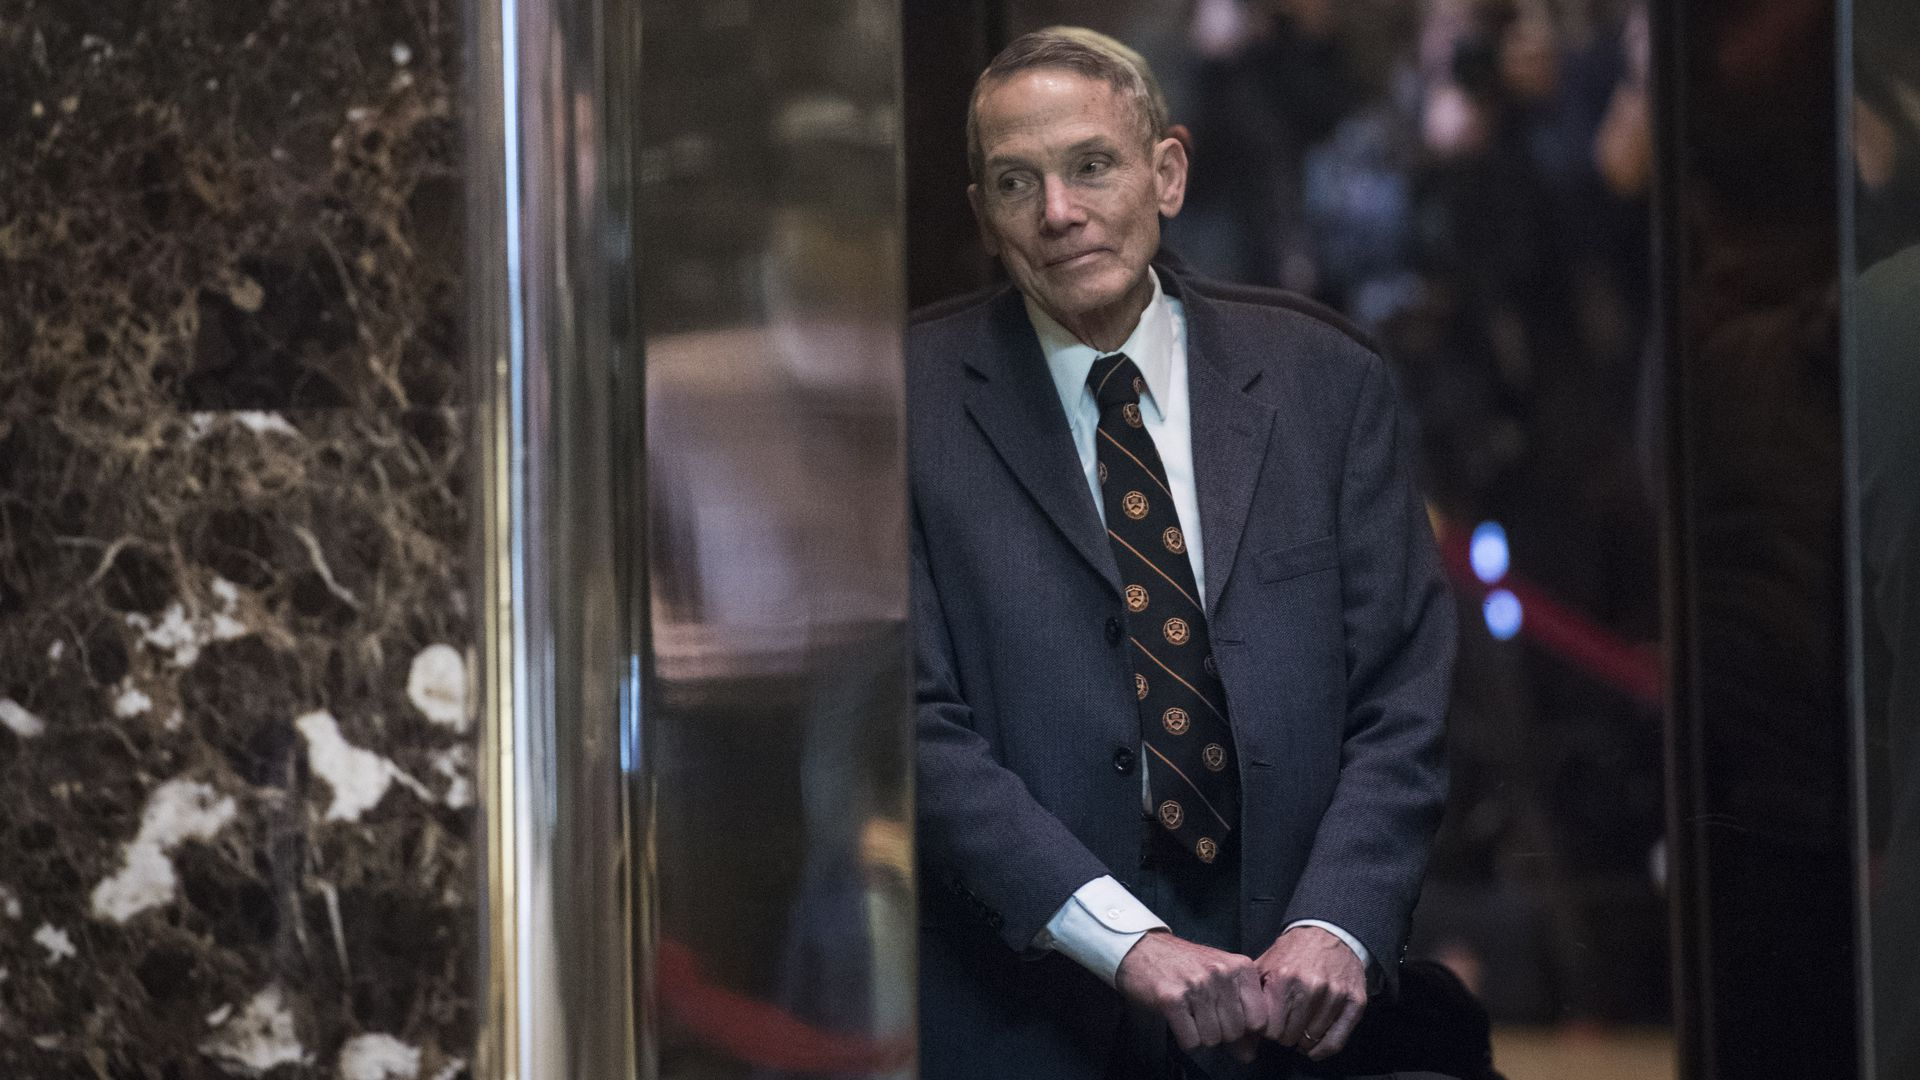 Physicist William Happer arrives in the lobby of Trump Tower in New York, N.Y.